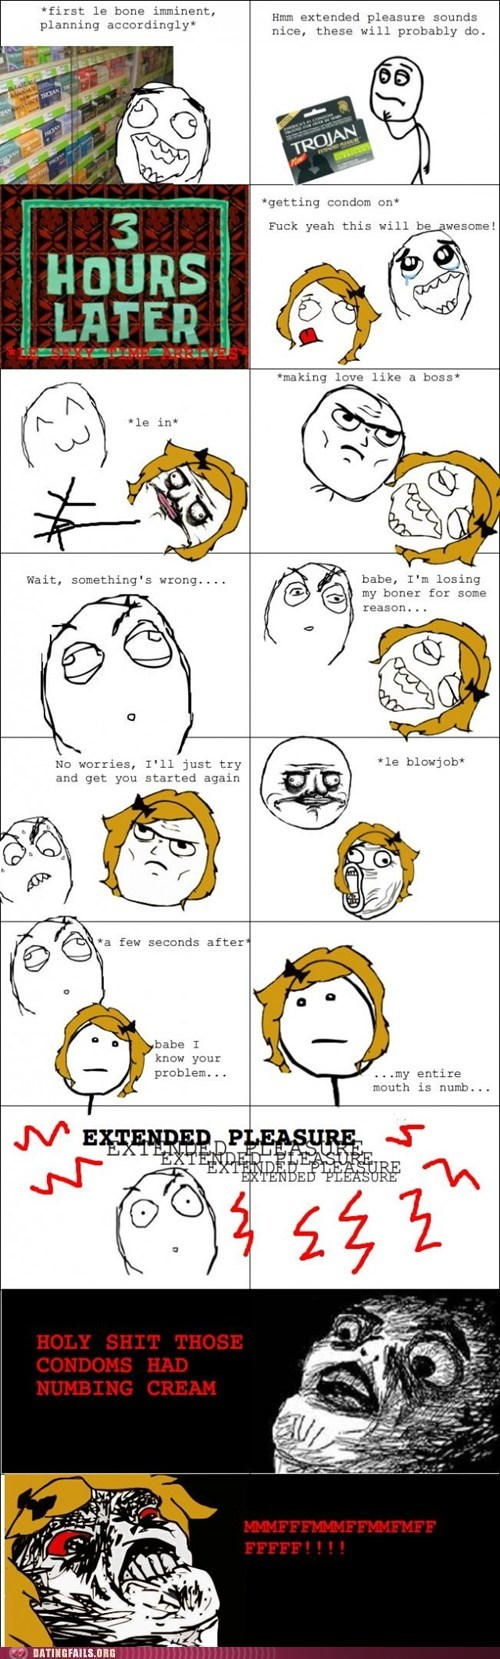 condoms,contraception,extended pleasure,numb,Rage Comics,sexytimes